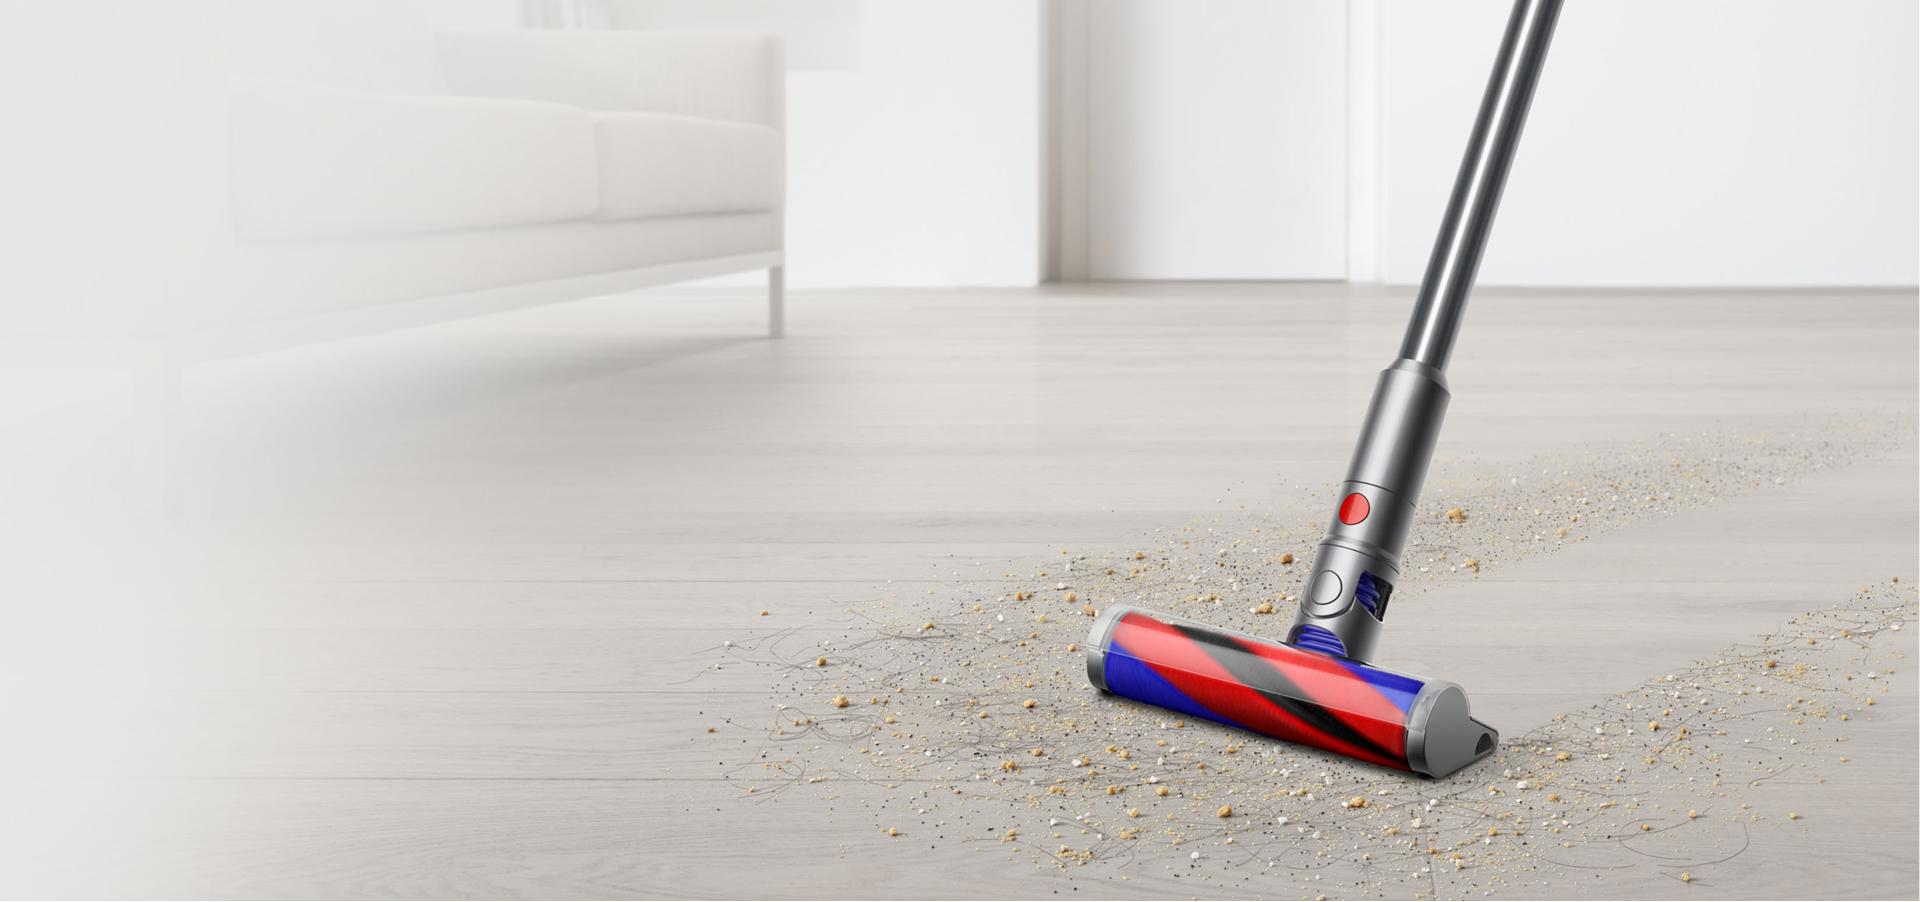 Dyson Micro 1.5kg cleaning debris from hard floor.